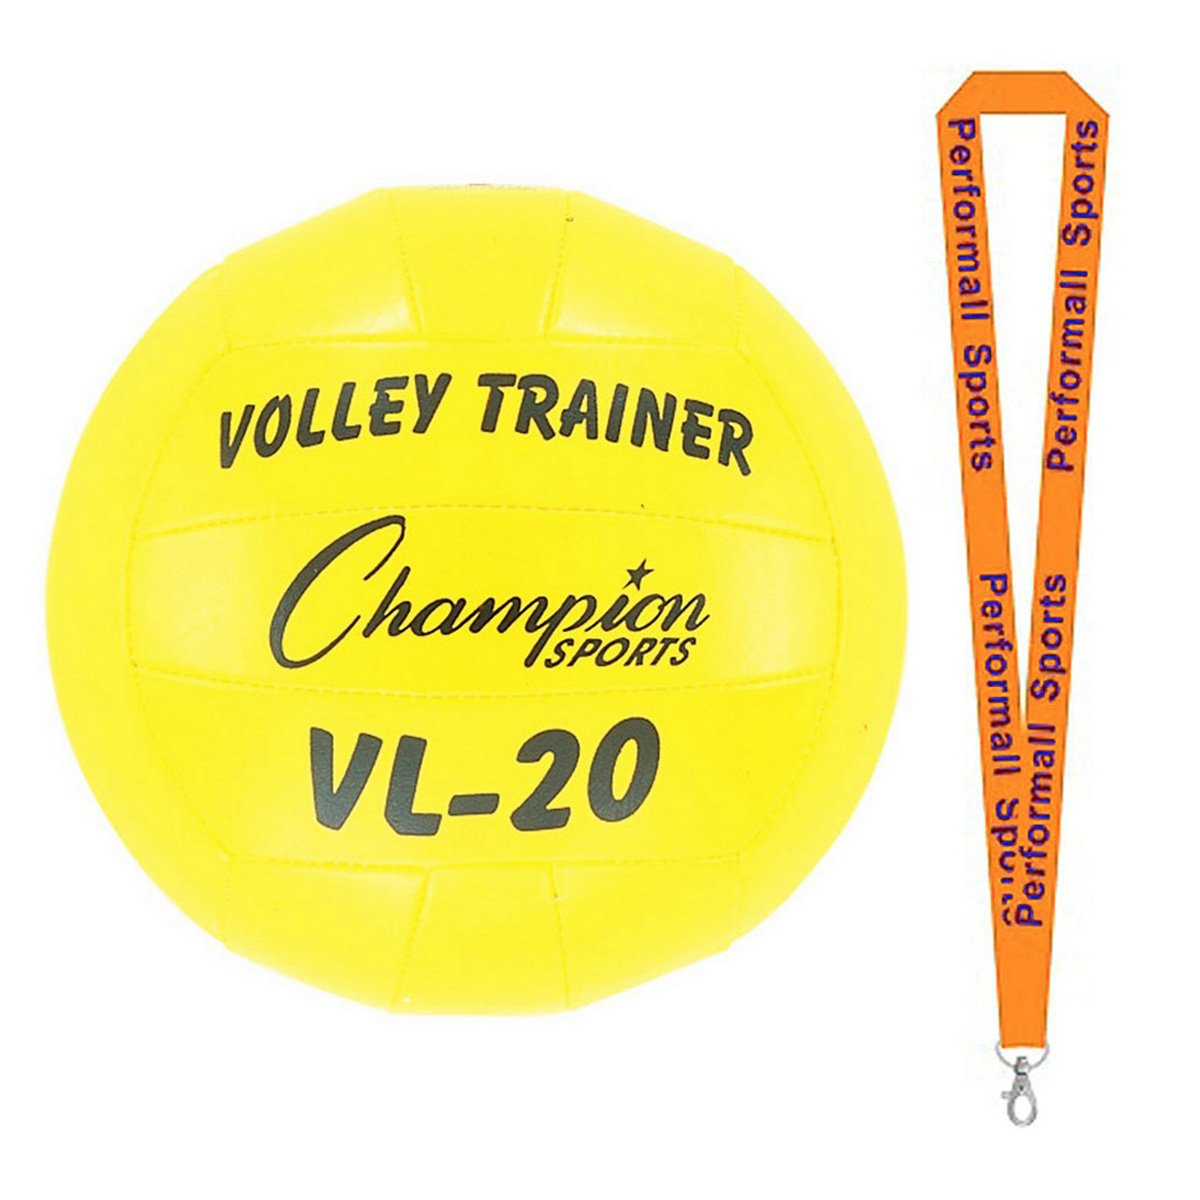 Champion Sports Volleyball Trainer Yellow Bundle with 1 Performall Lanyard VL20-1P